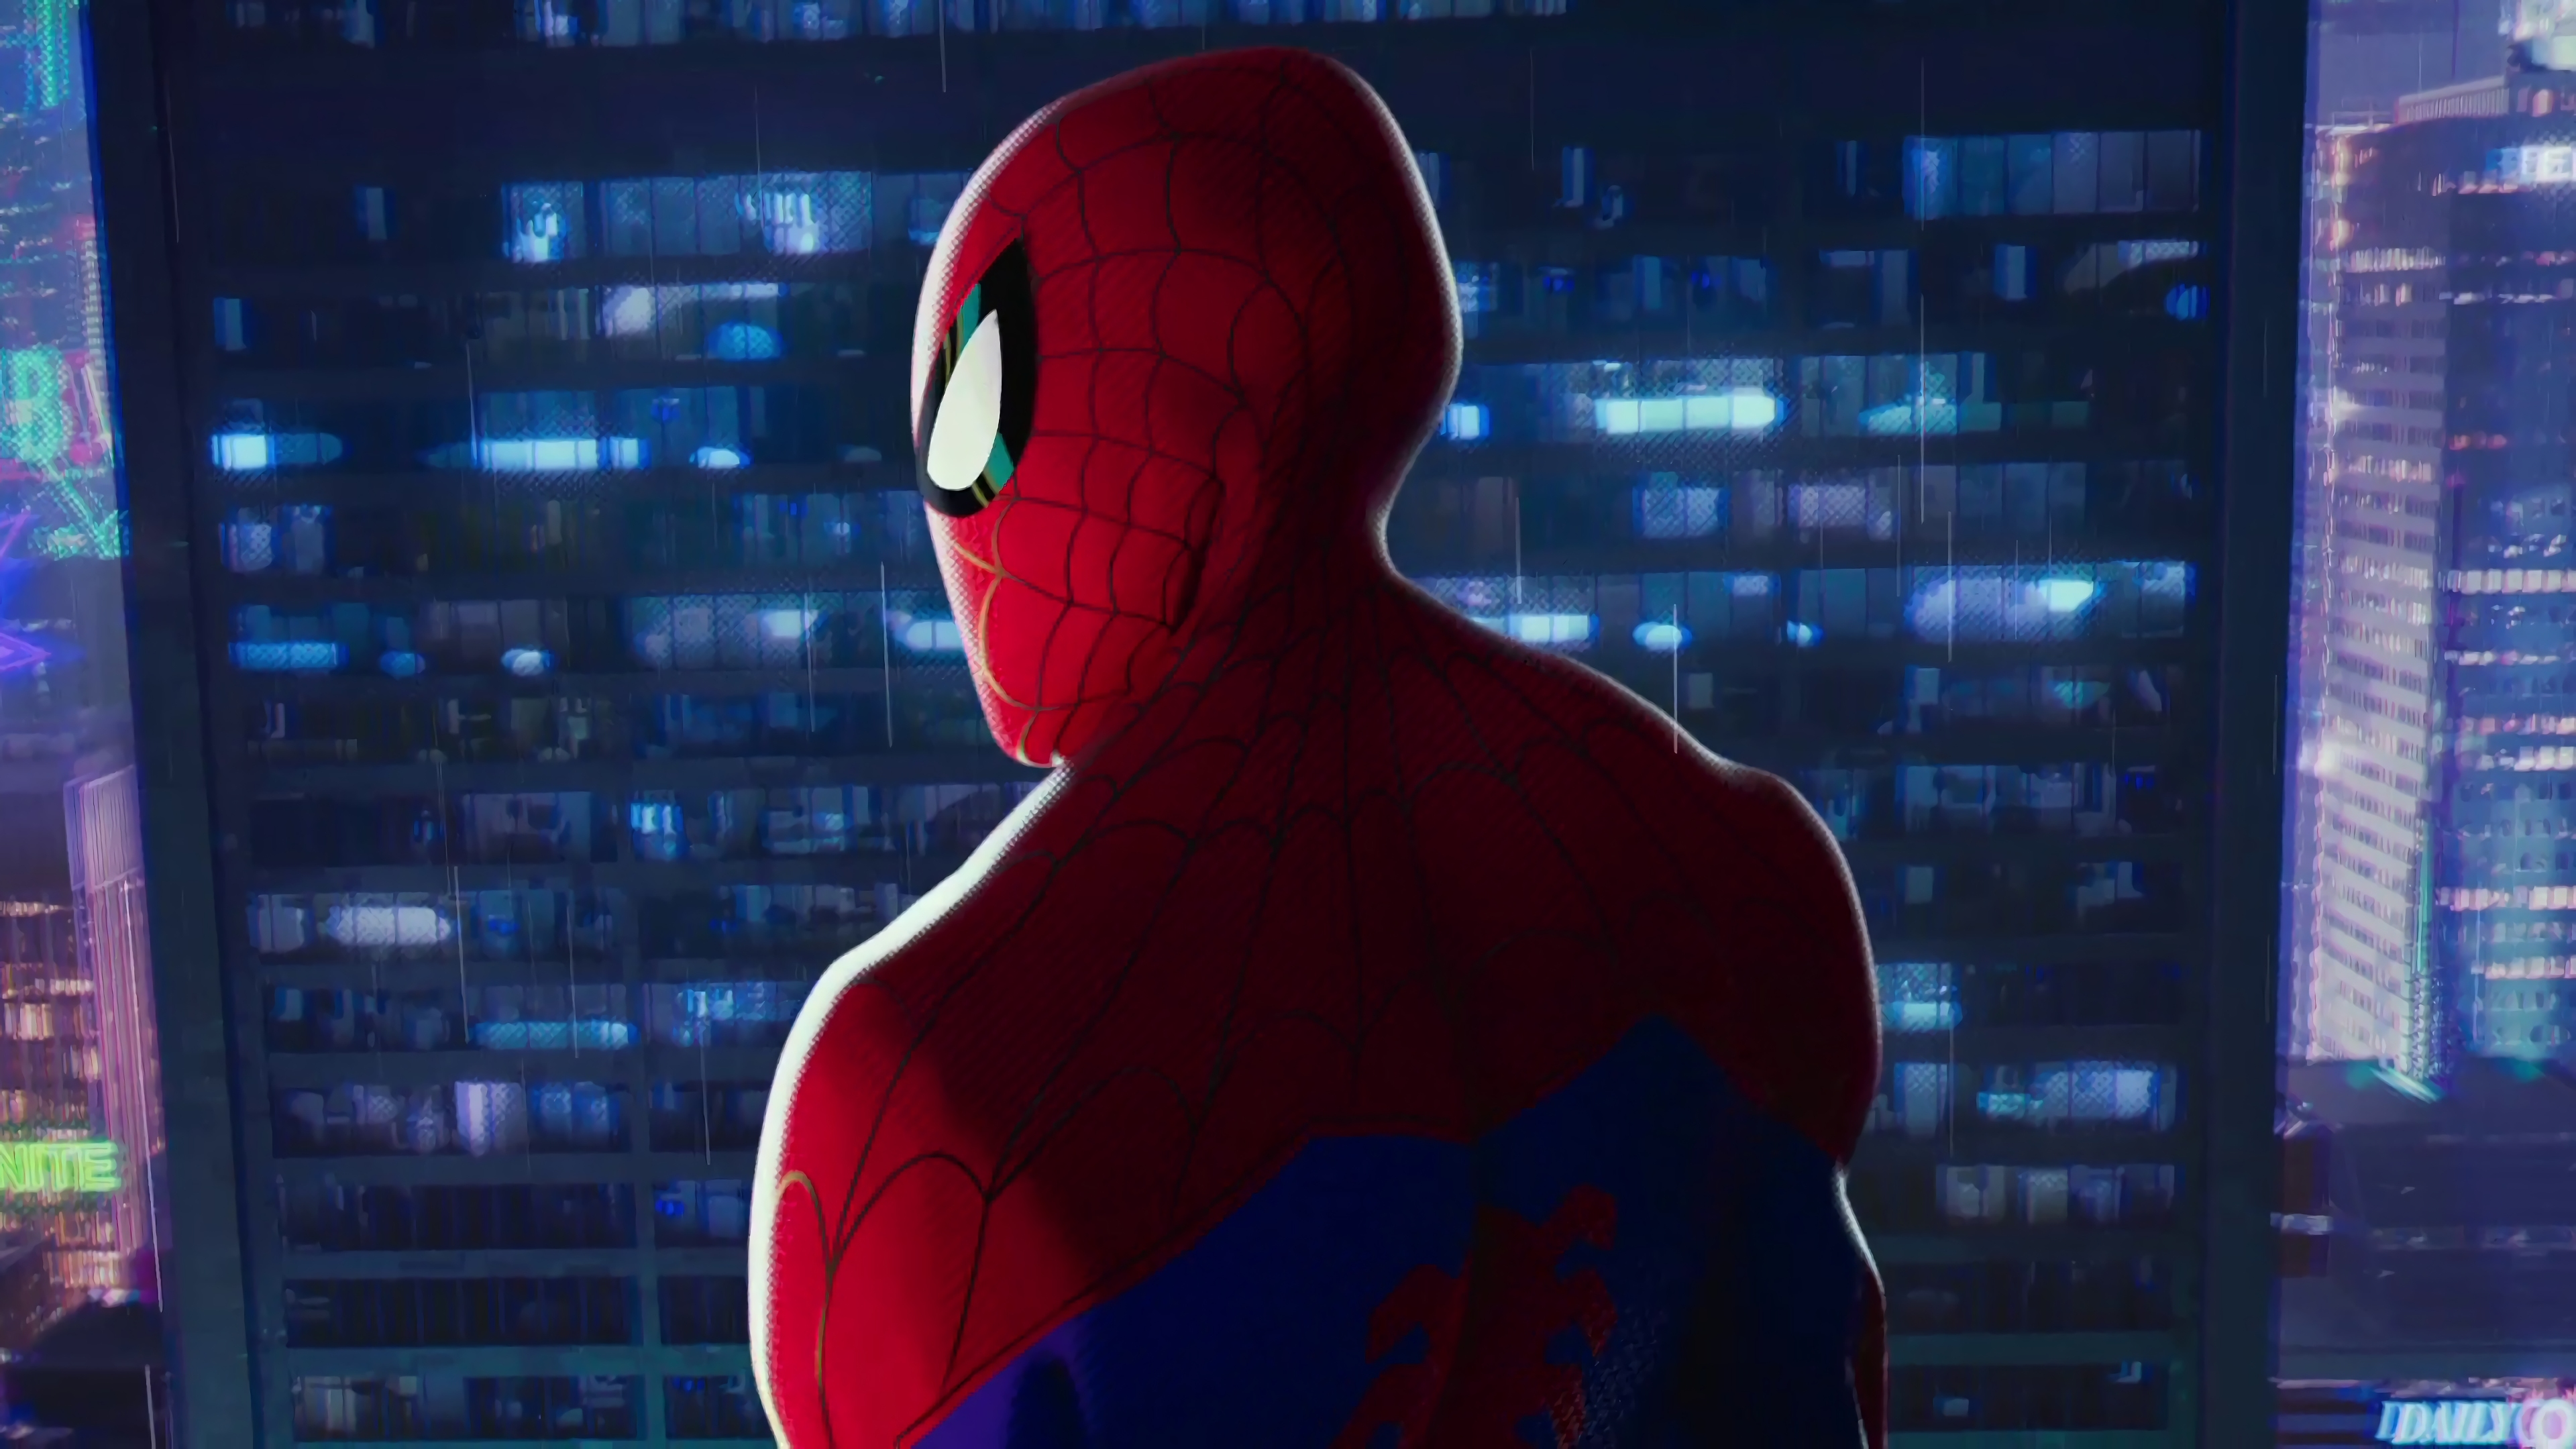 3840x2160 Spiderman Into The Spider Verse Movie 4k 2018 4k Hd 4k